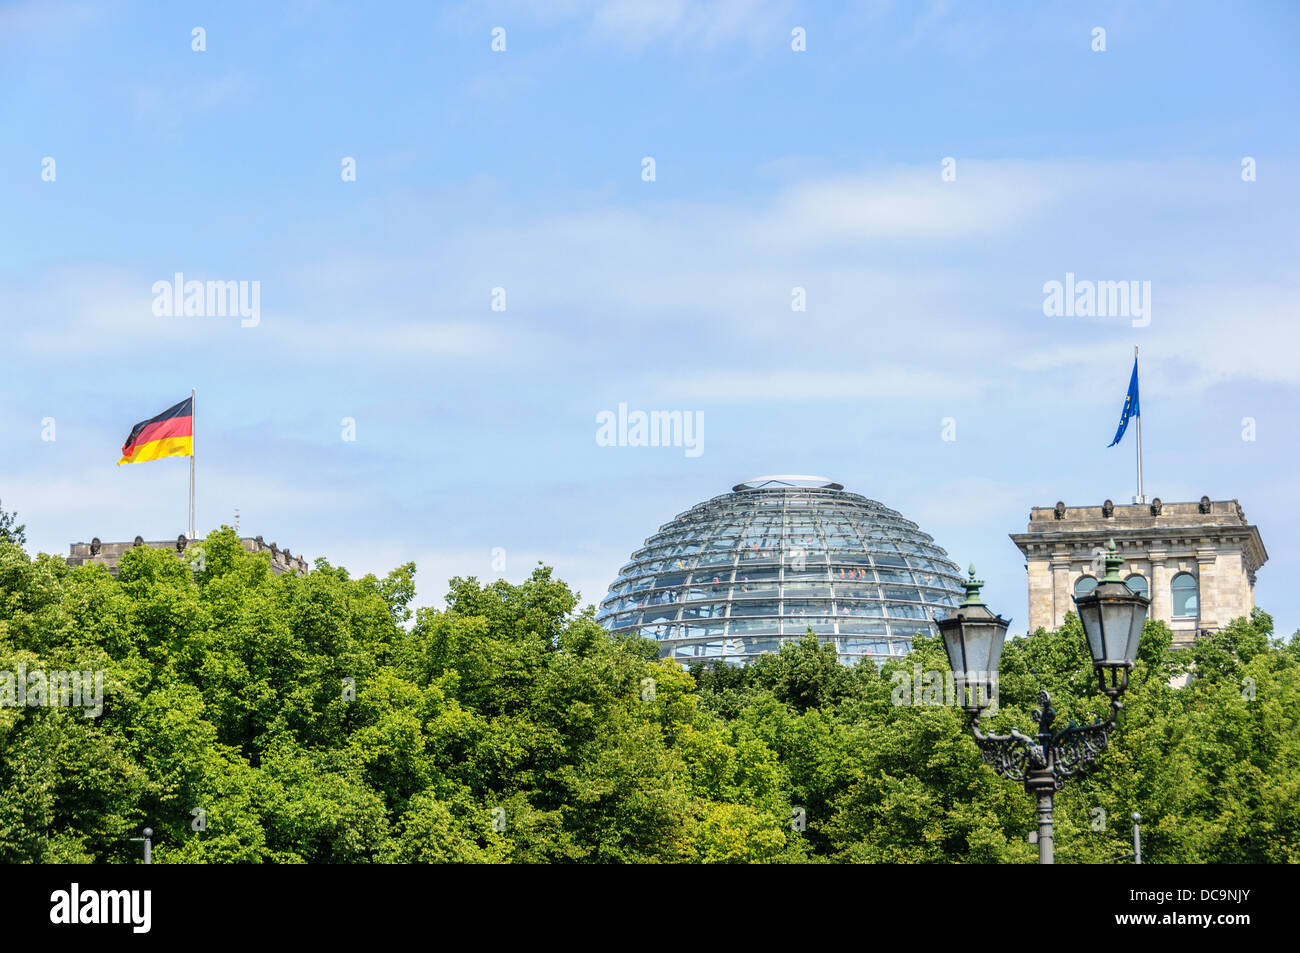 The Reichstag building with the glass dome and the German and European flag seen from the south - Berlin Germany Stock Photo